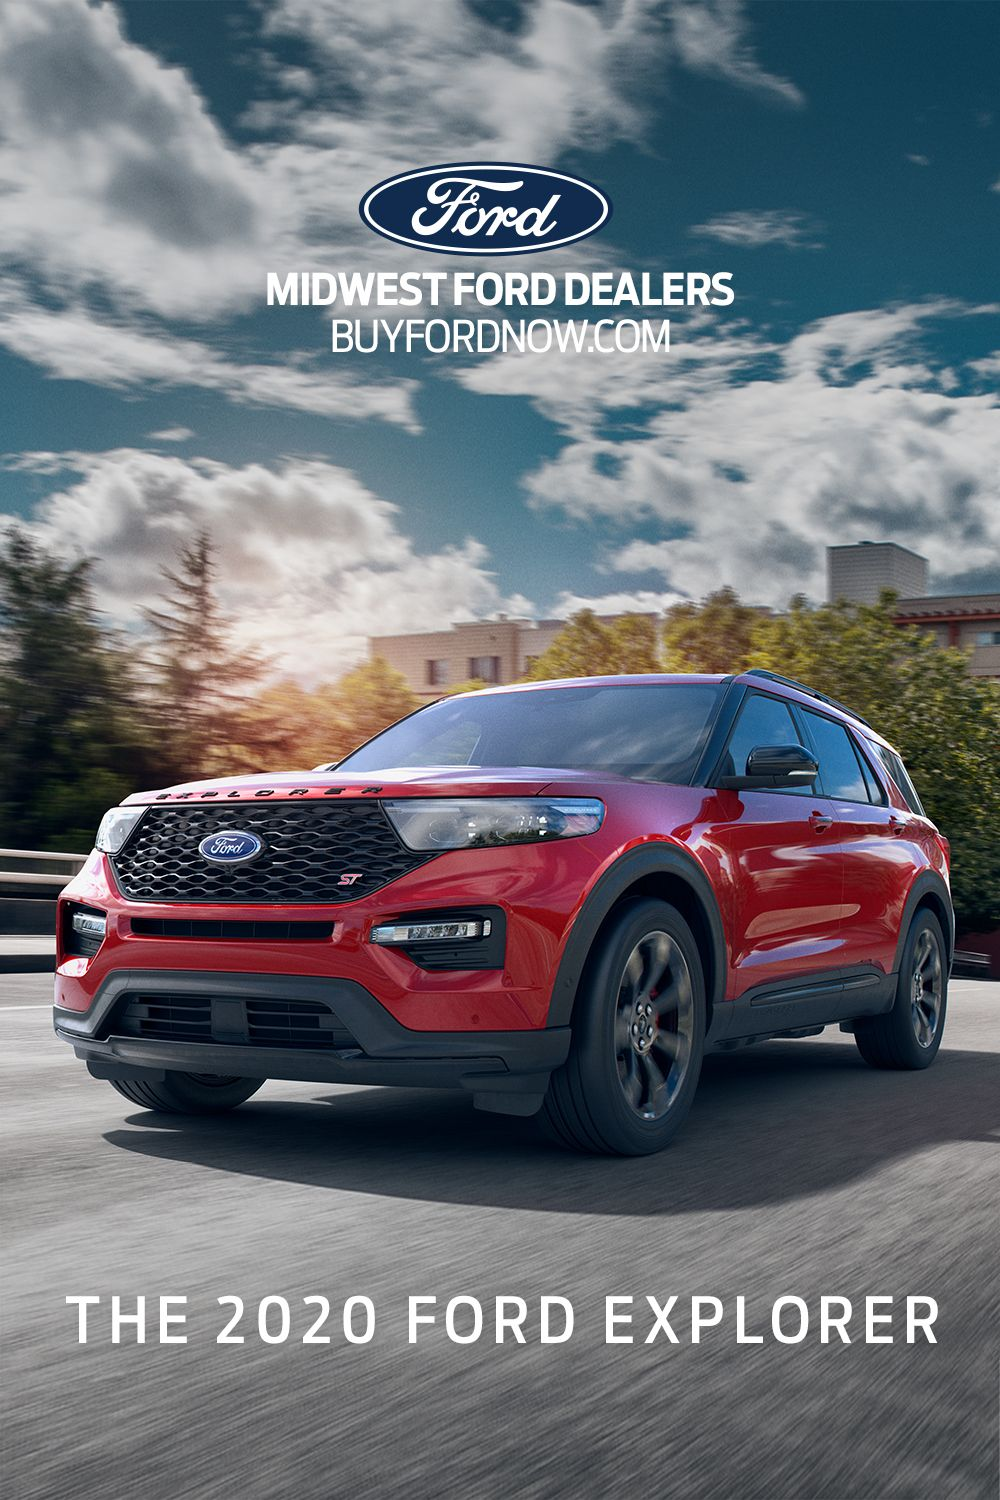 The 2020 Ford Explorer In 2020 2020 Ford Explorer Ford Explorer Ford Classic Cars